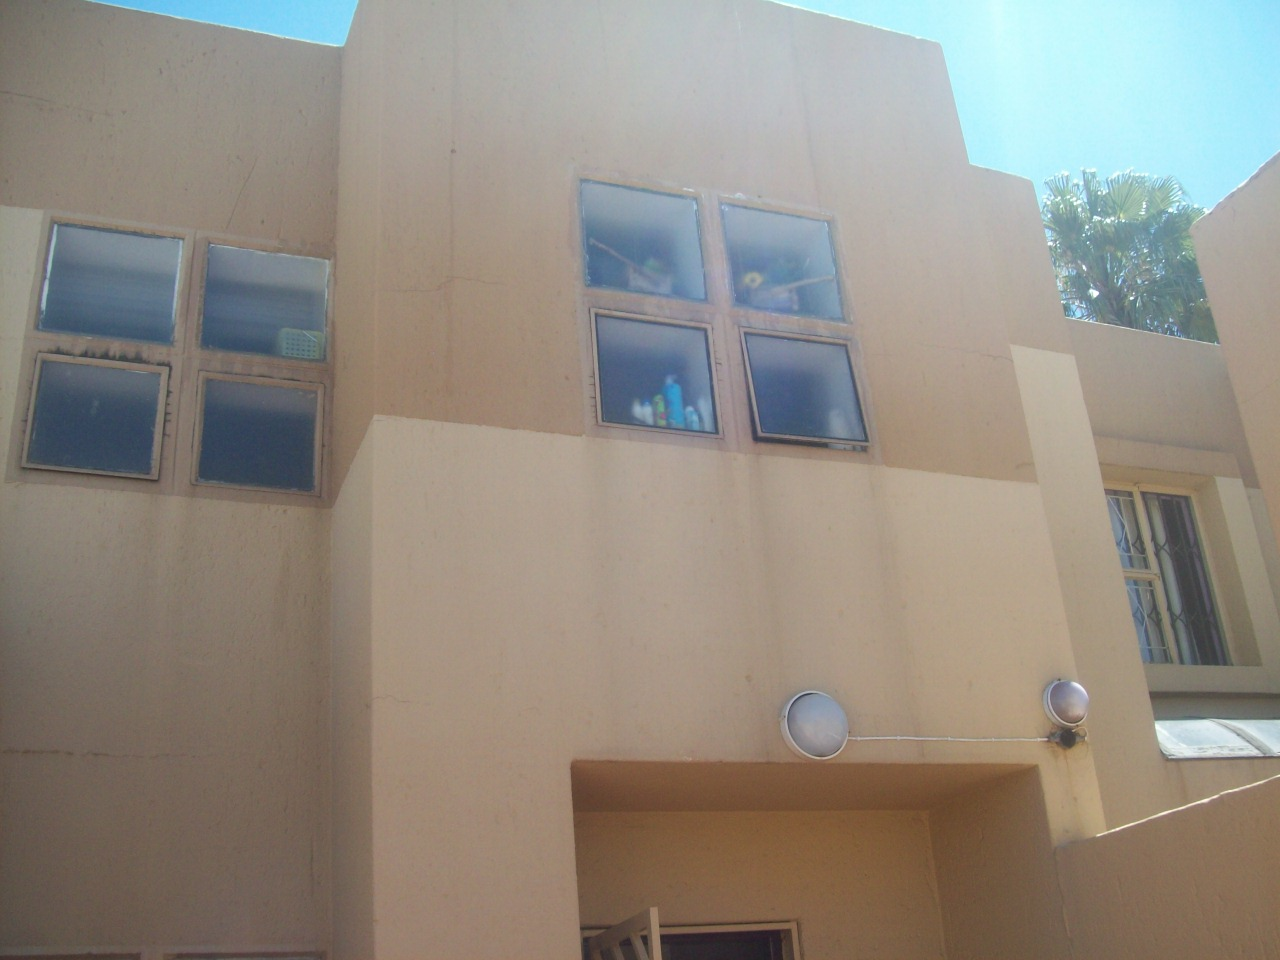 3 Bedroom Townhouse for sale in Bassonia ENT0071278 : photo#3